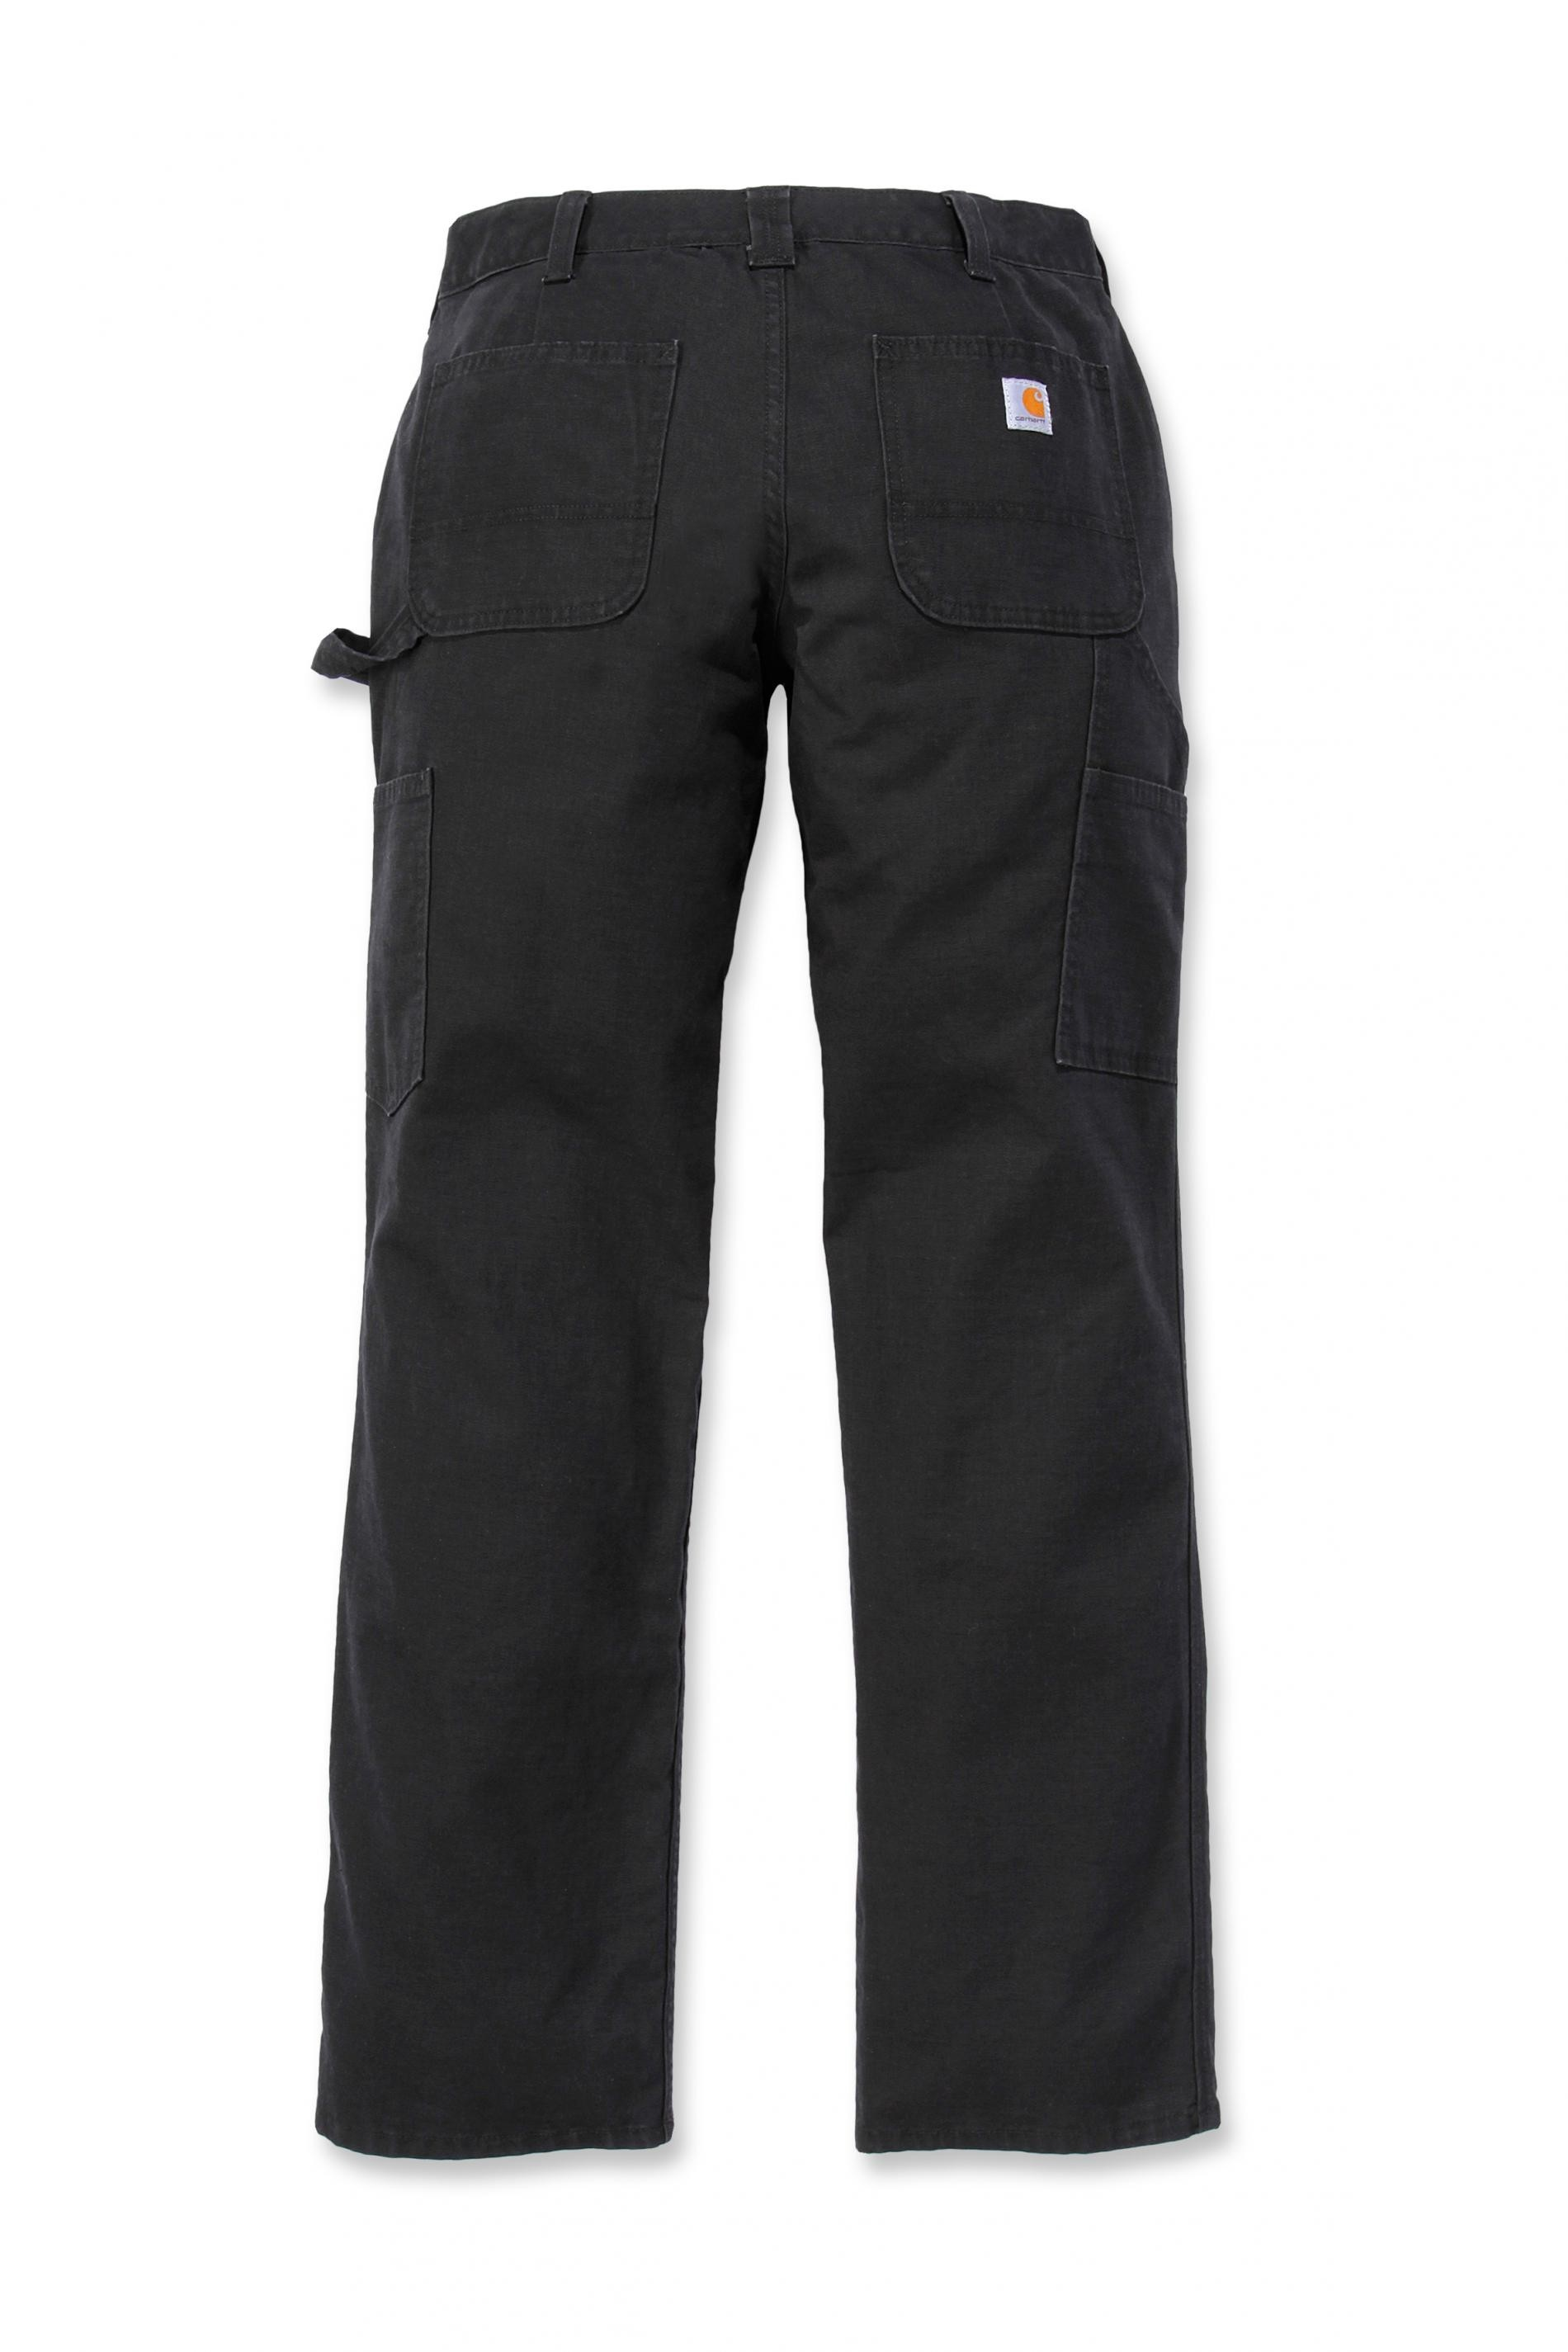 Carhartt Womens Crawford Pant : Black